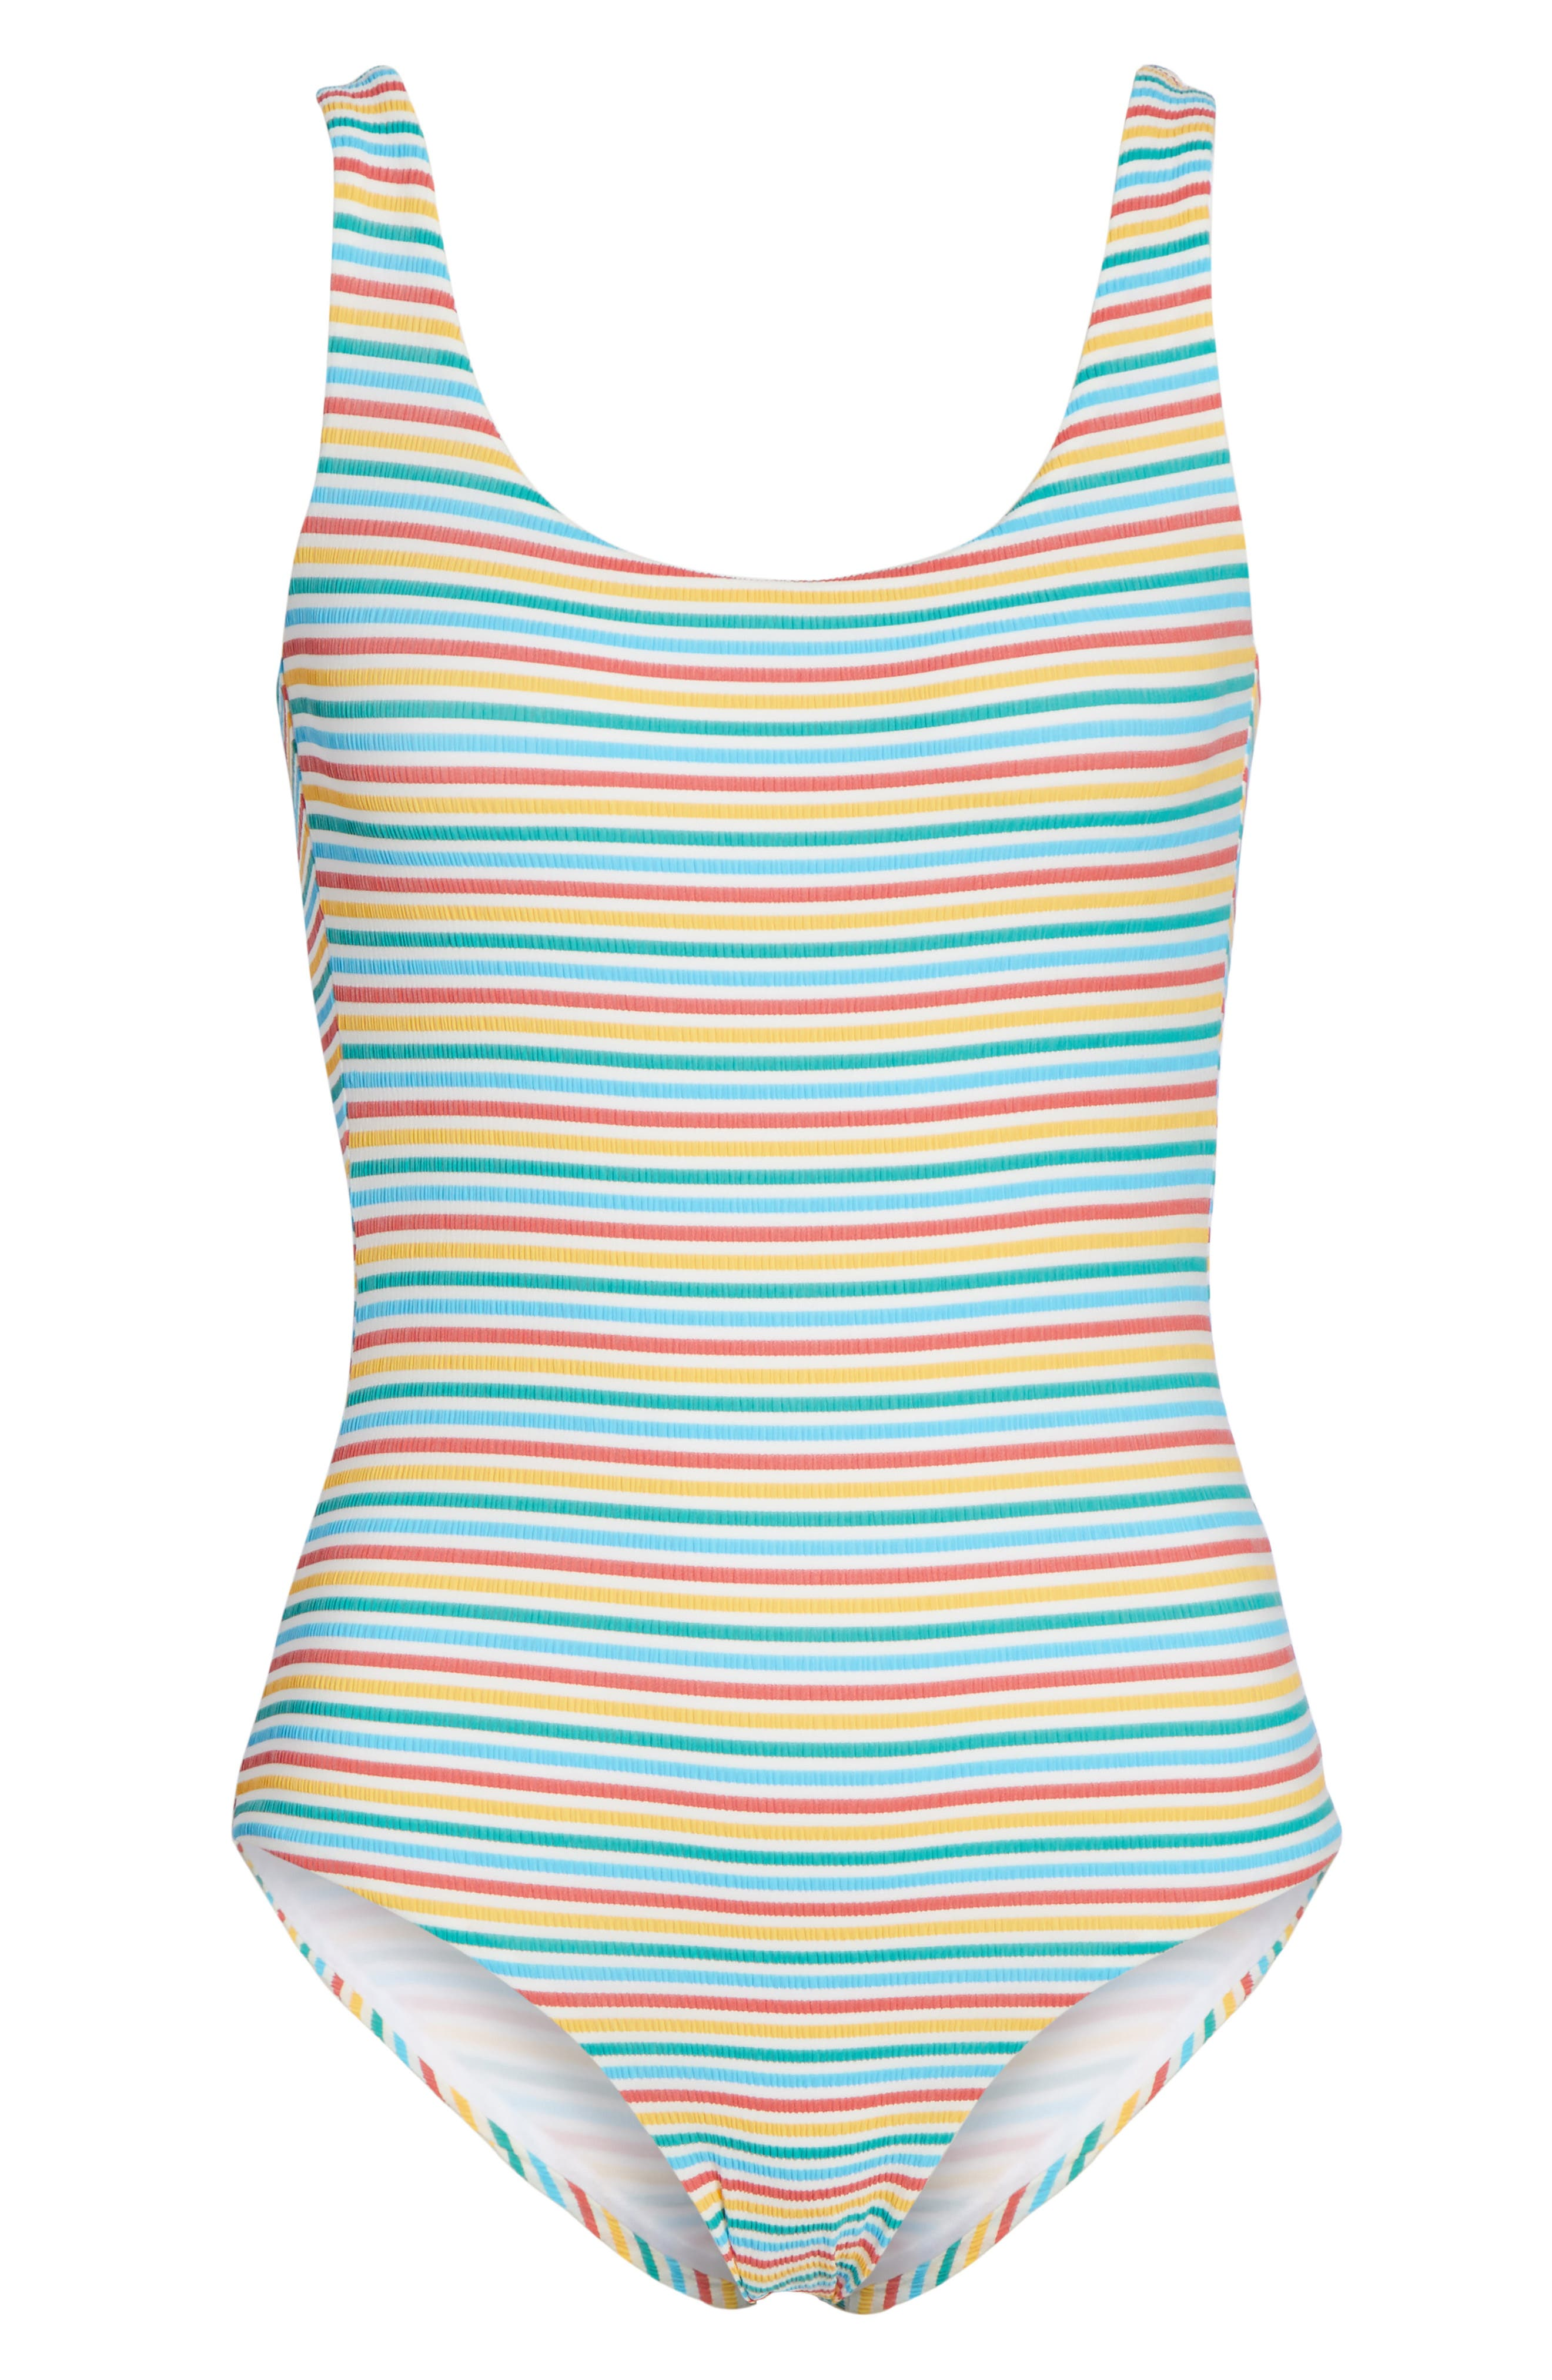 Stripe Low Back One-Piece Swimsuit,                             Alternate thumbnail 6, color,                             Yellow/ Blue/ Red